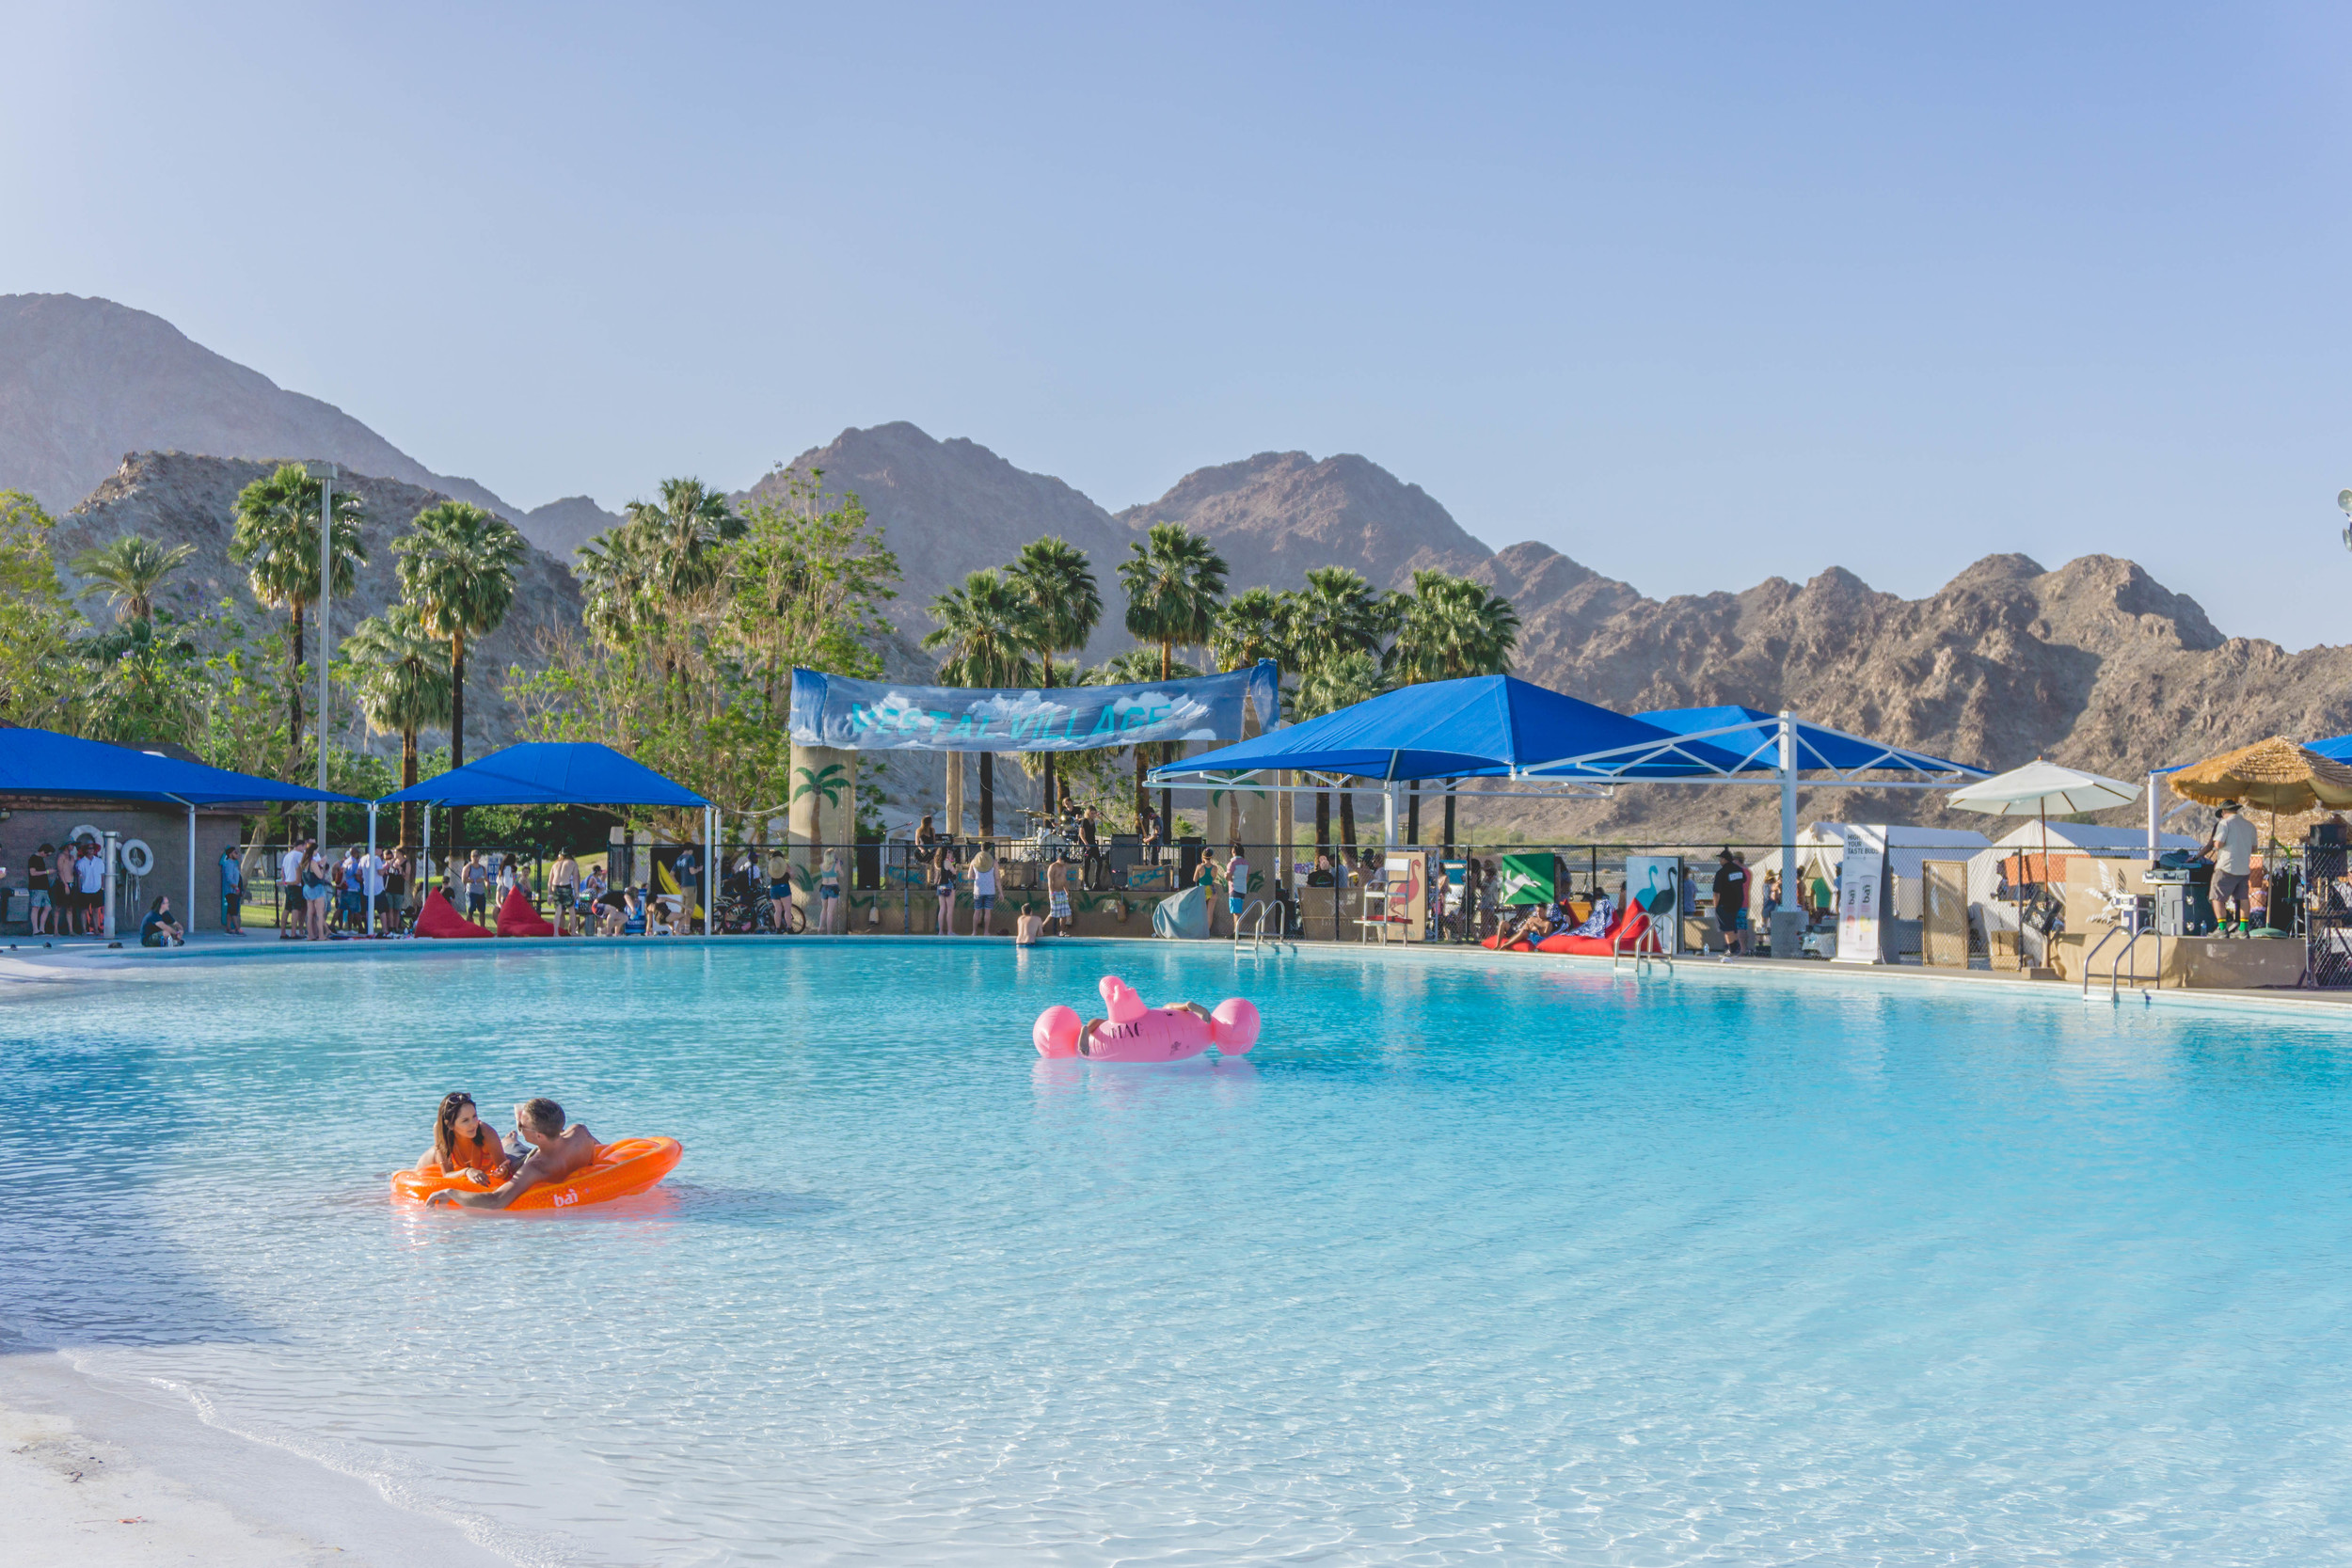 Coachella attendees abandoned their private lagoon around 4PM